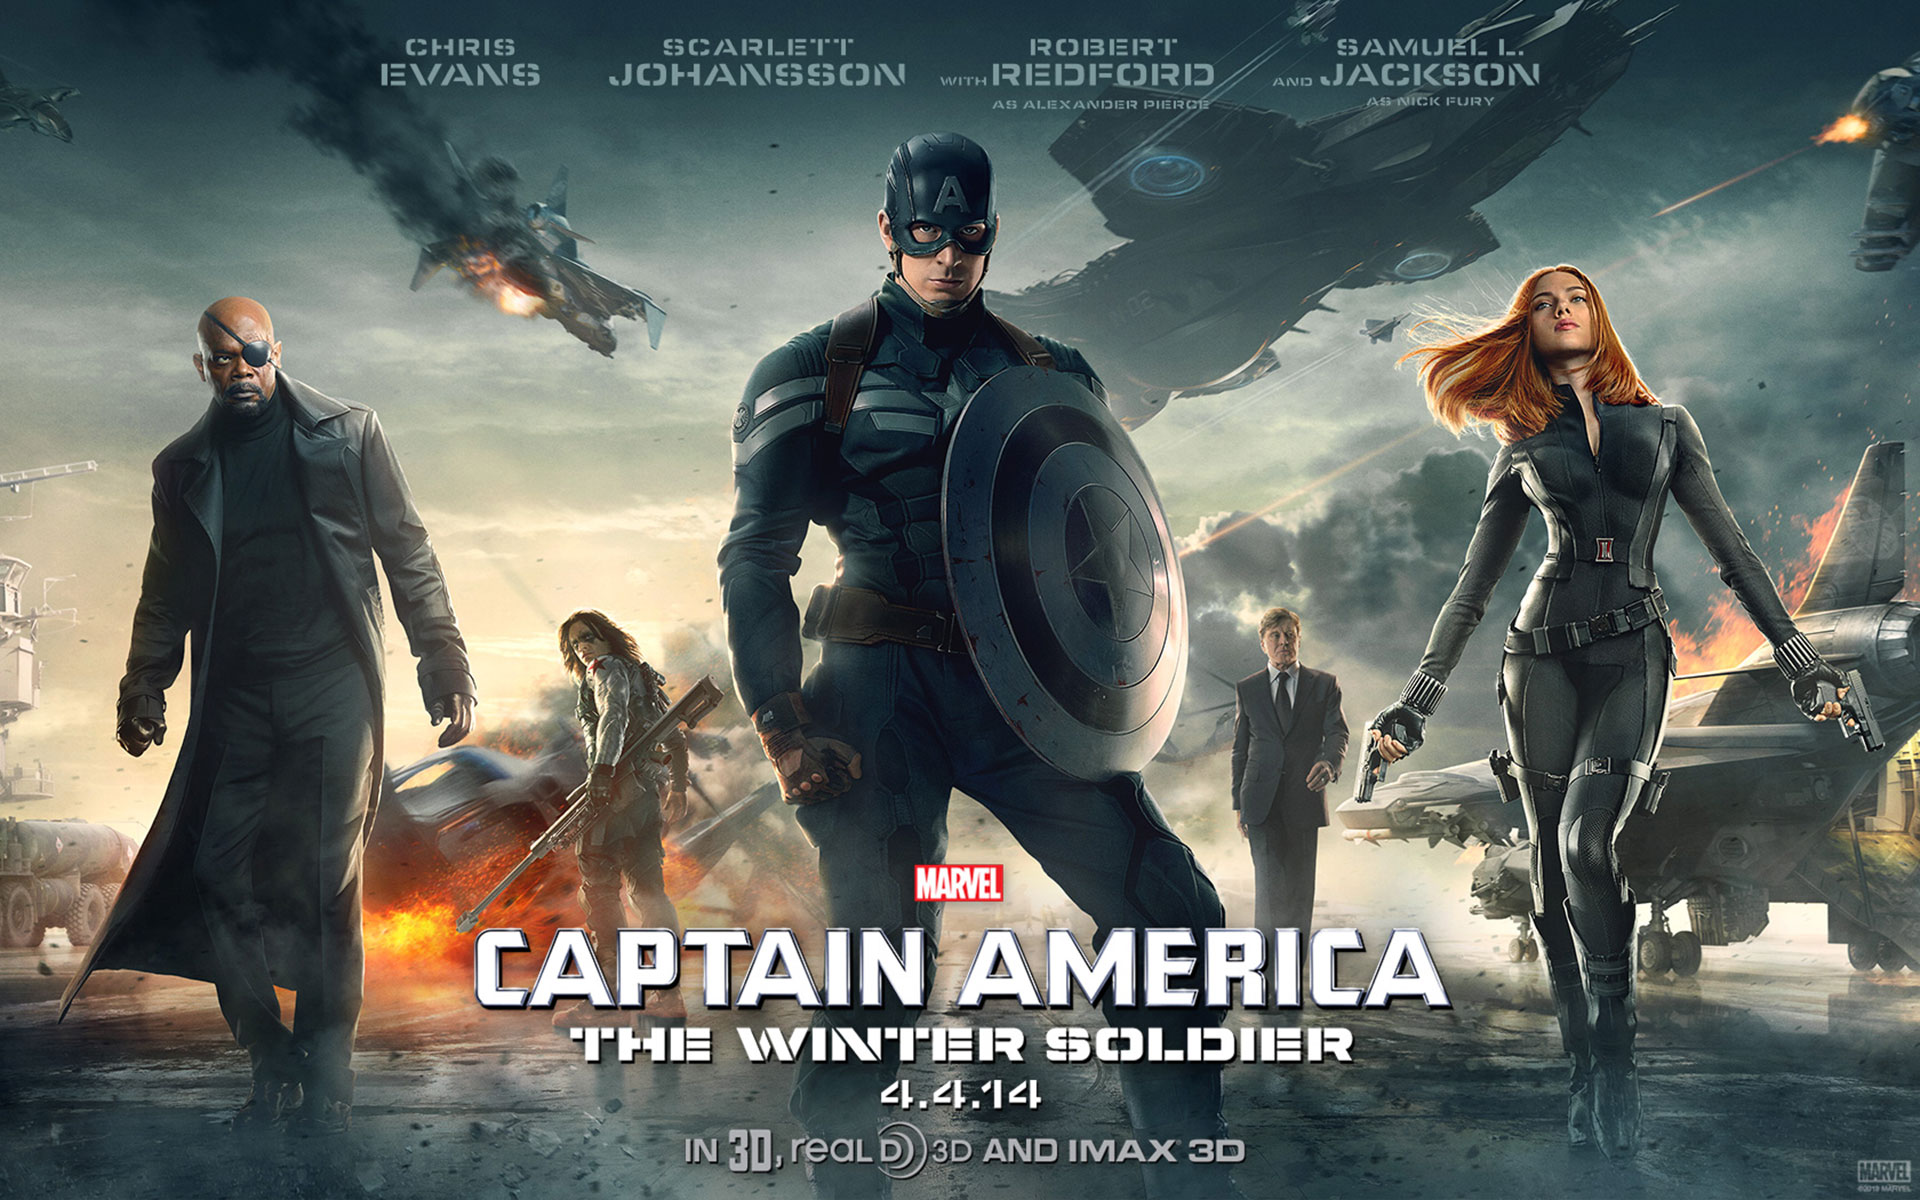 Wallpapers HD Capitn America 2014   Taringa 1920x1200